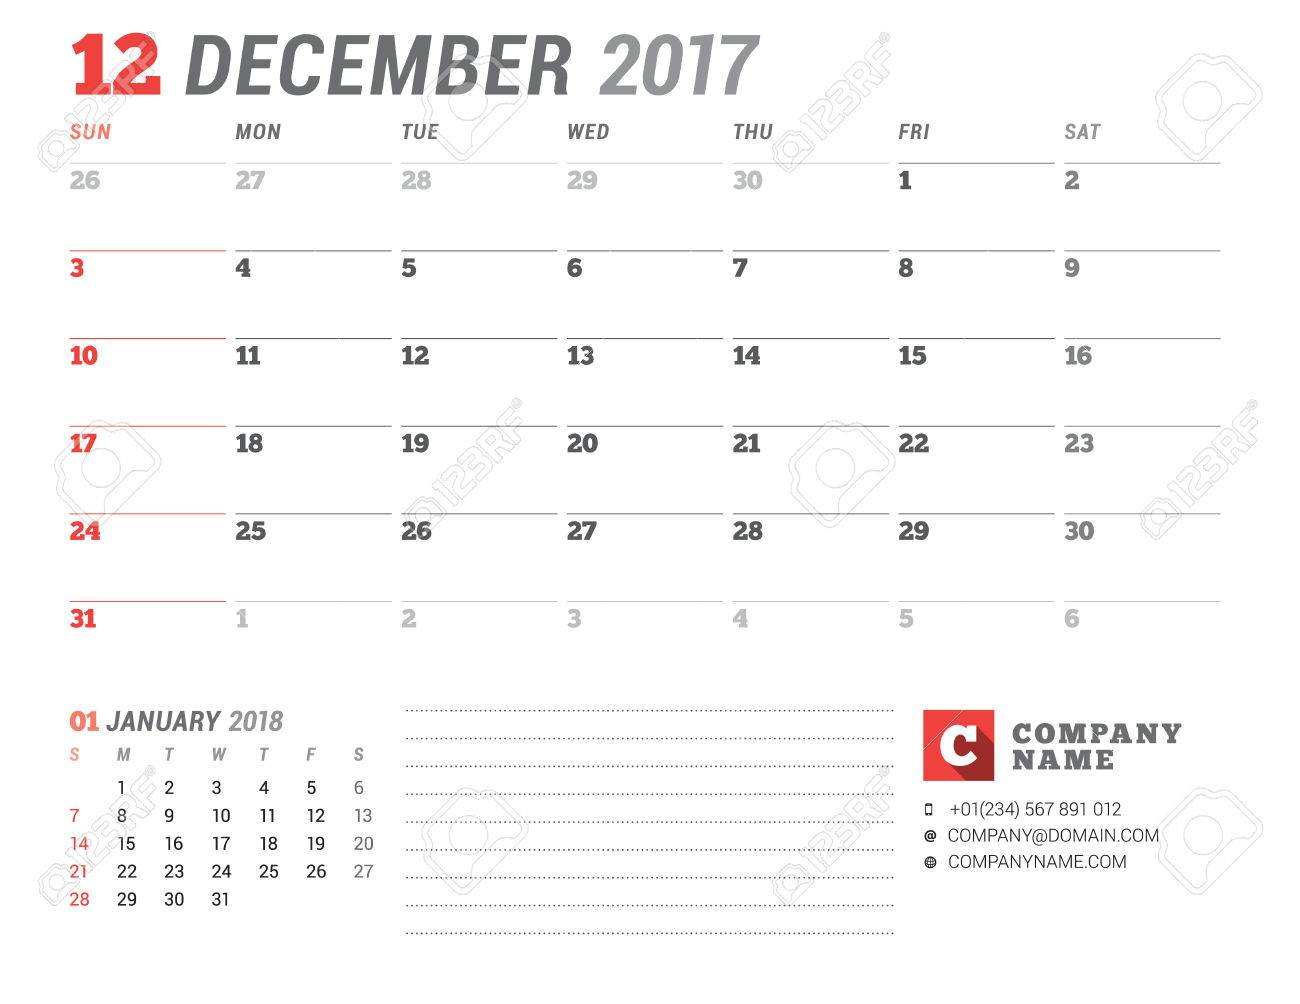 Generous 1 Week Schedule Template Tall 1 Year Experienced Java Resume Solid 12 Team Schedule Template 1st Job Resume Objective Old 2.25 Button Template Soft2013 Resume Writing Trends Calendar Template For 2017 Year. December. Business Planner 2017 ..